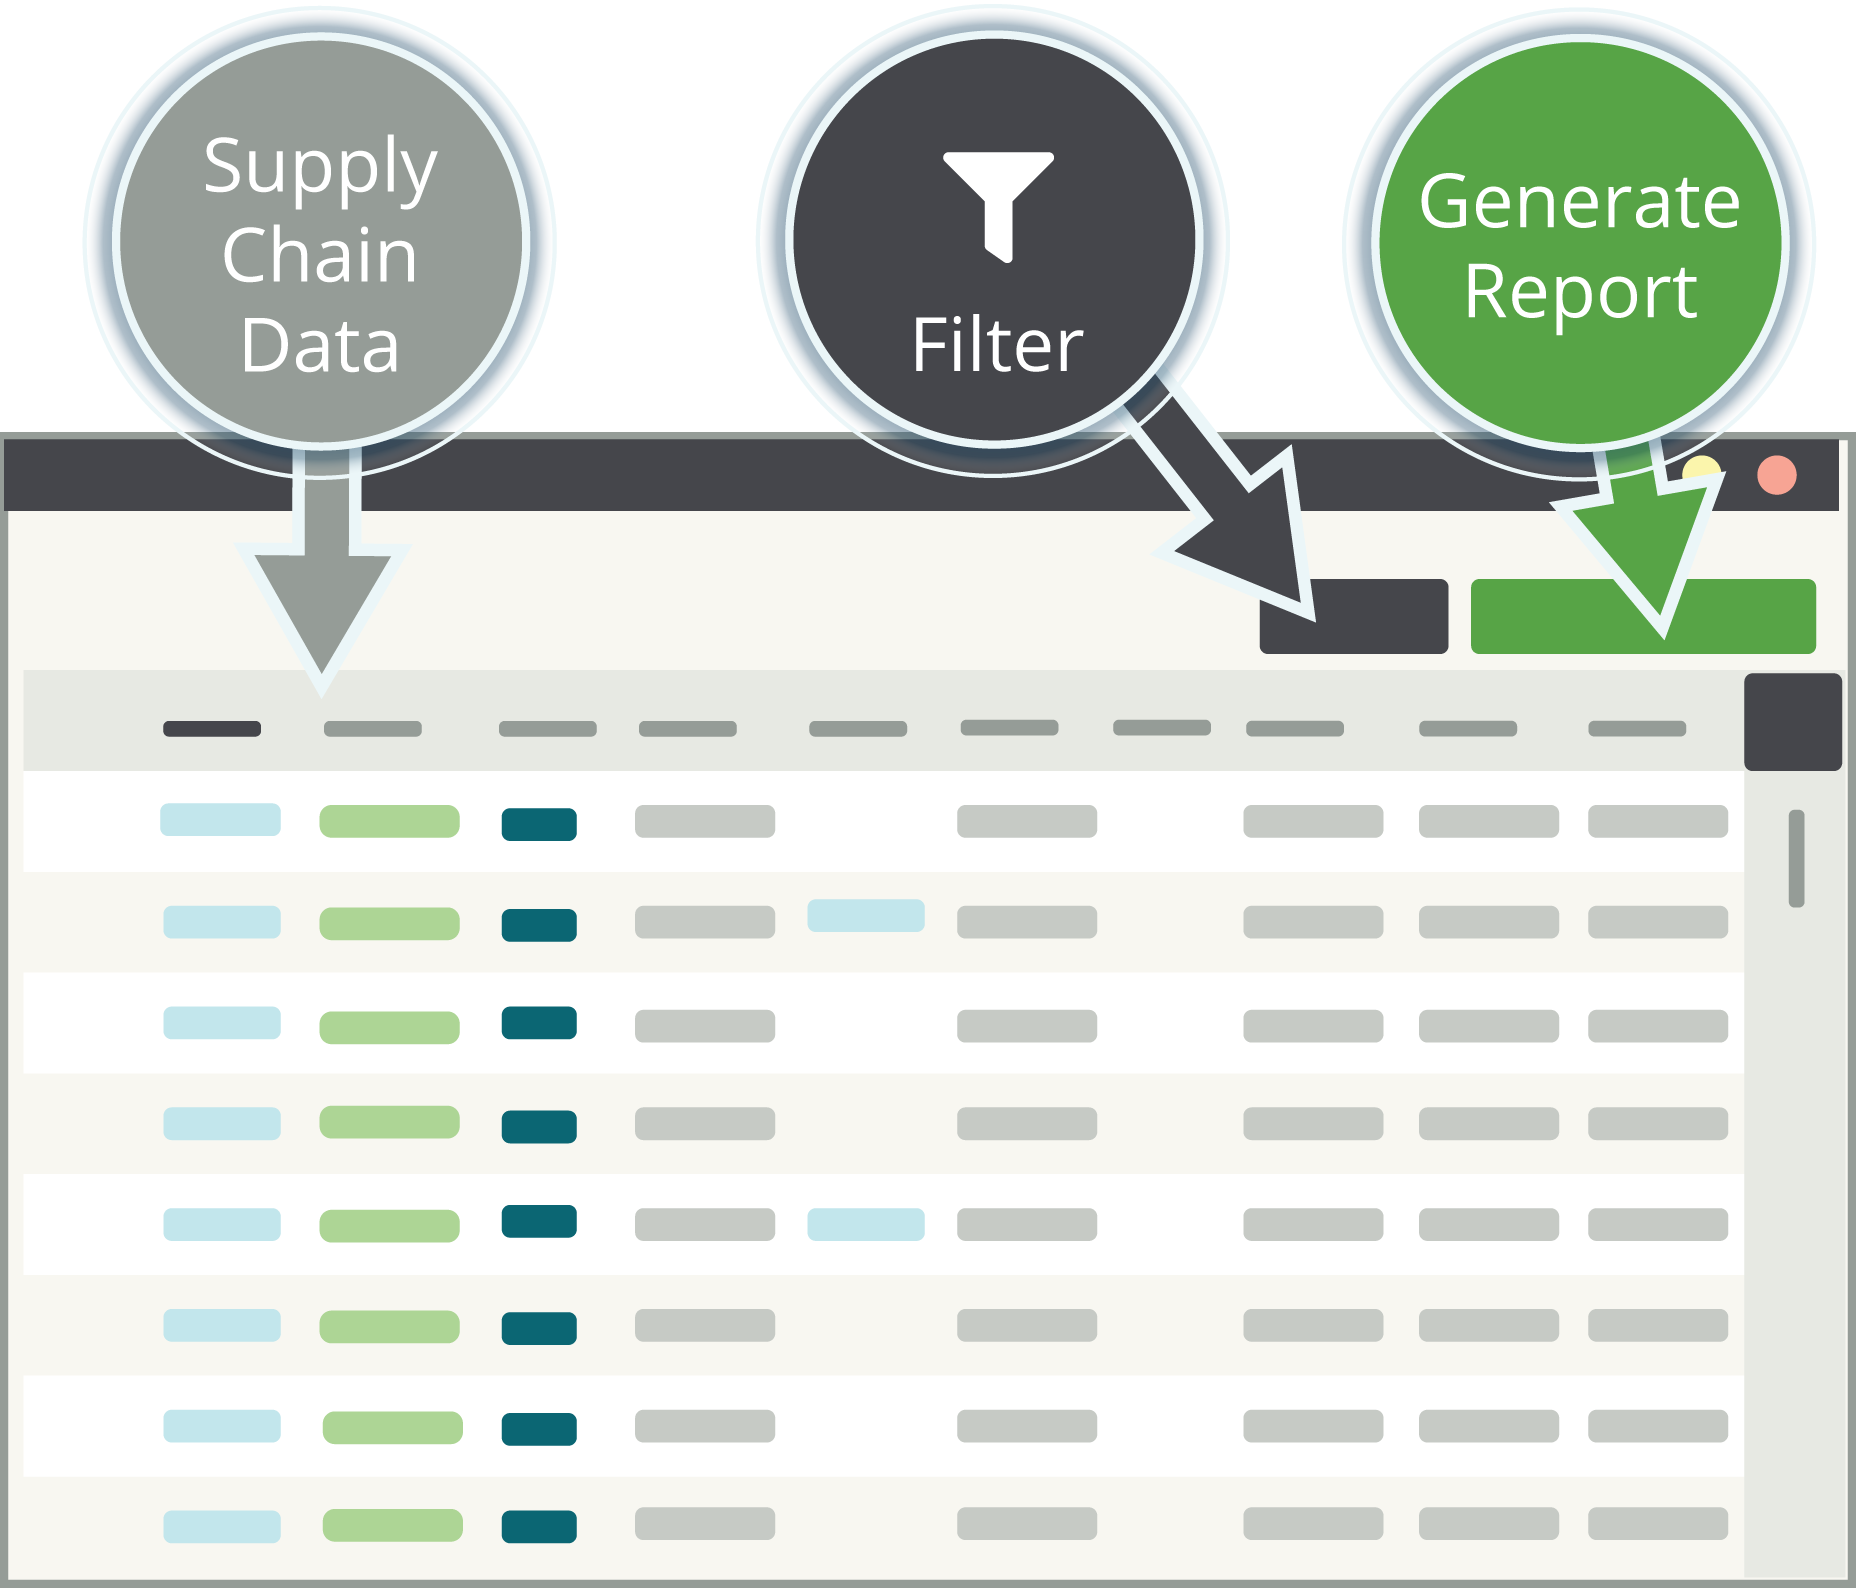 Introducing the new Supplier Dashboard